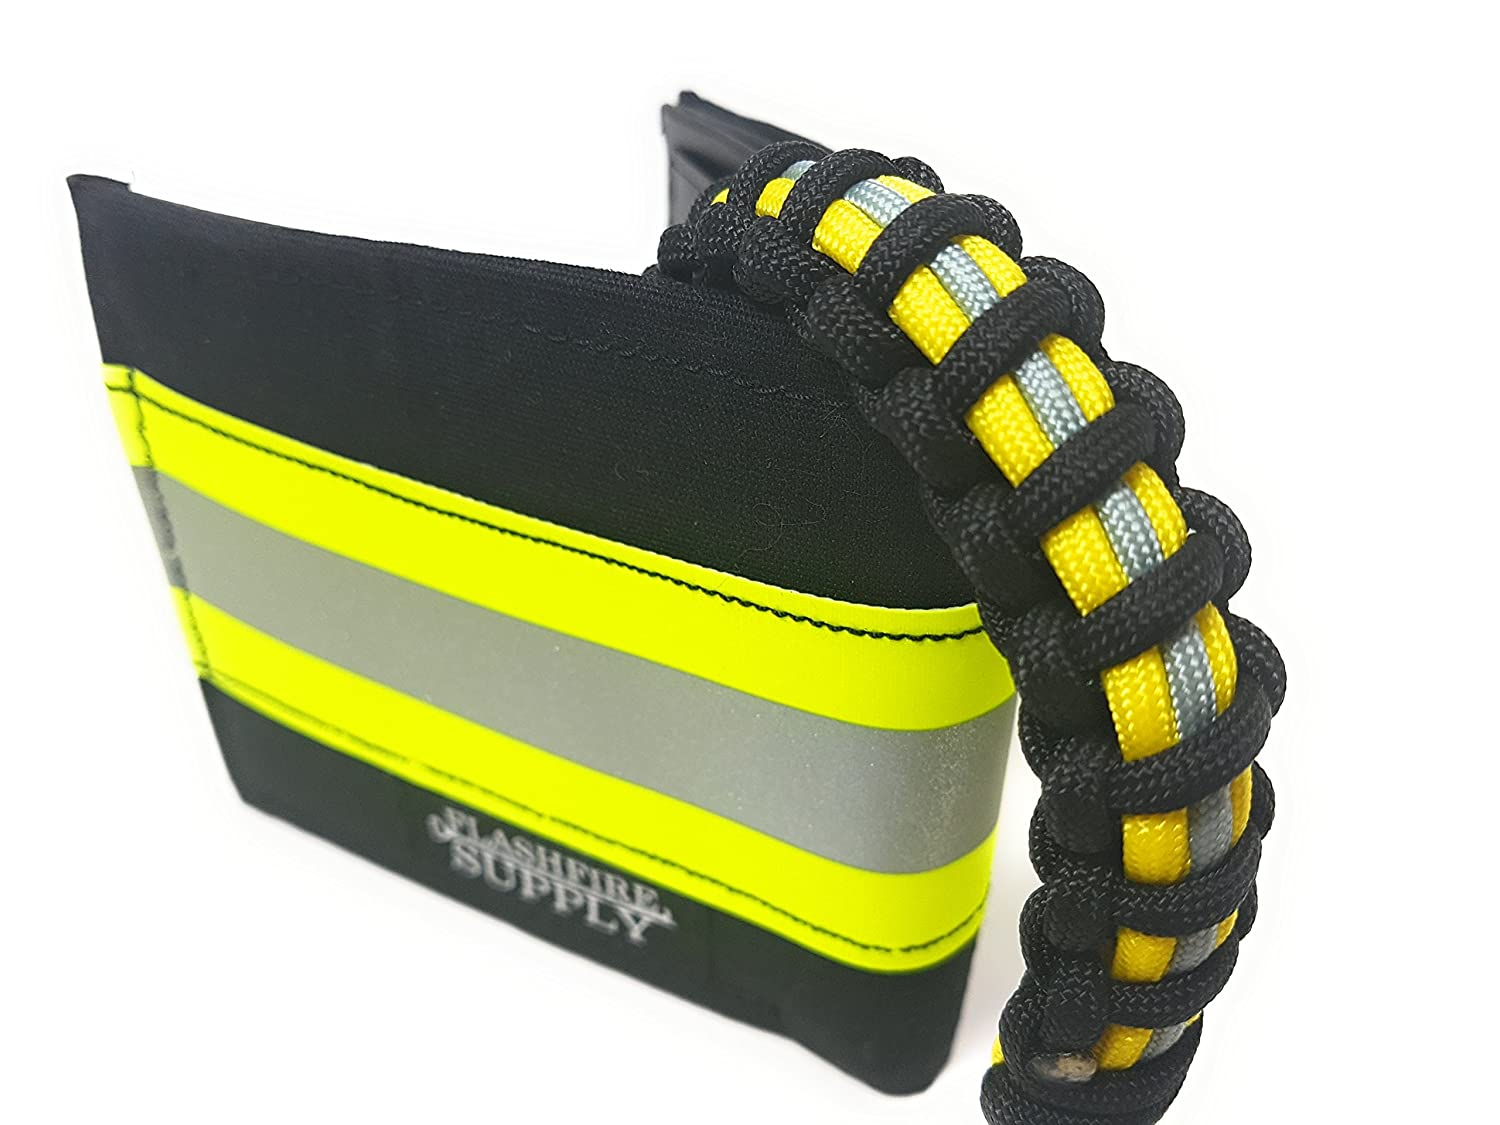 Firefighter Paracord Adjustable Survival bracelets Black and Yellow